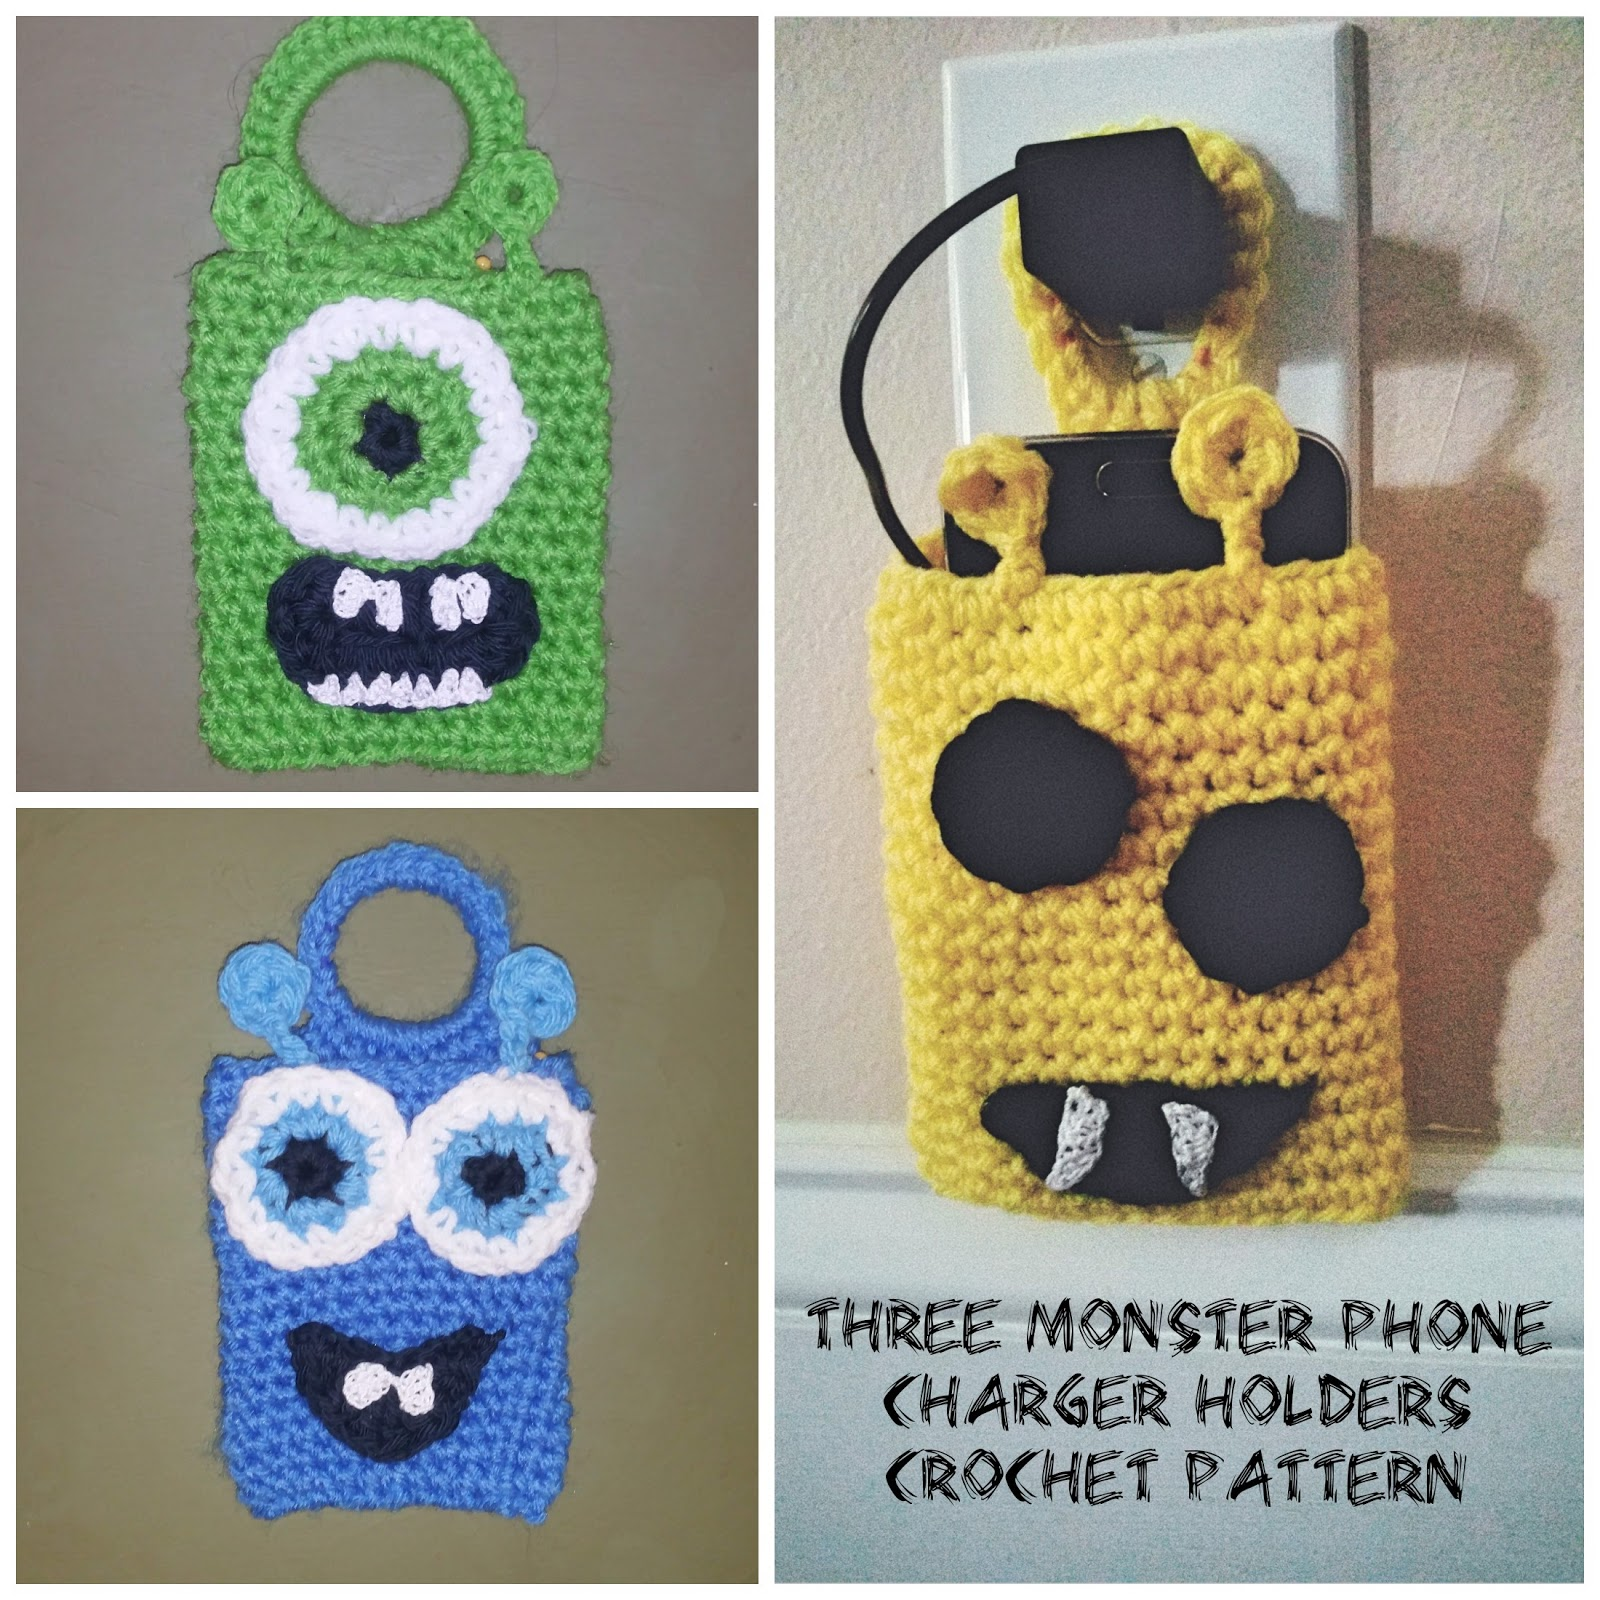 Monsters Phone Charger Holders Crochet Pattern - PDF